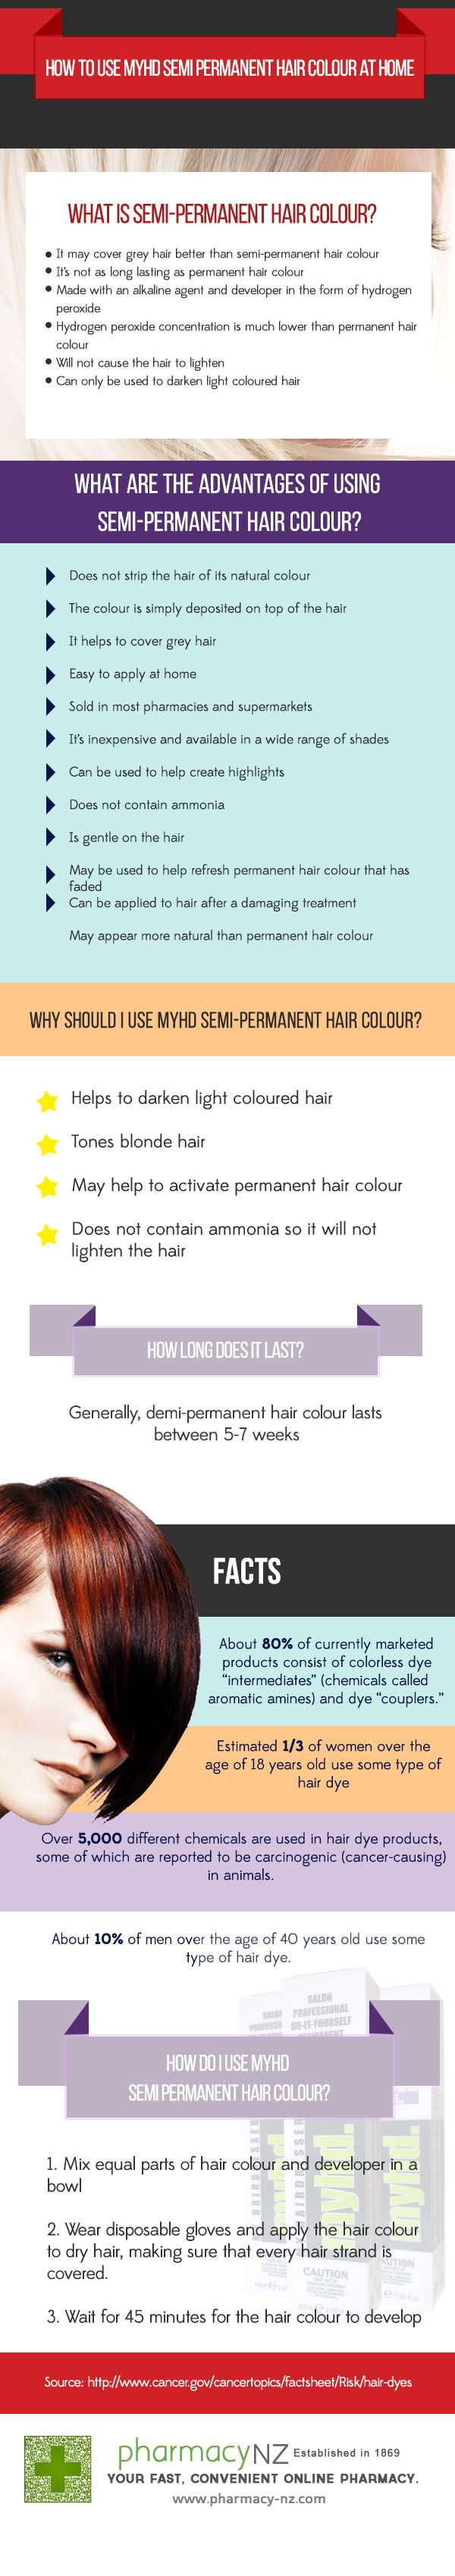 Are you tired of looking at your damaged hair after colouring? Learn how MYHD Semi-Permanent Hair Colour may help you. #haircolourwithnodamage #MYHD  #semipermanenthaircolour